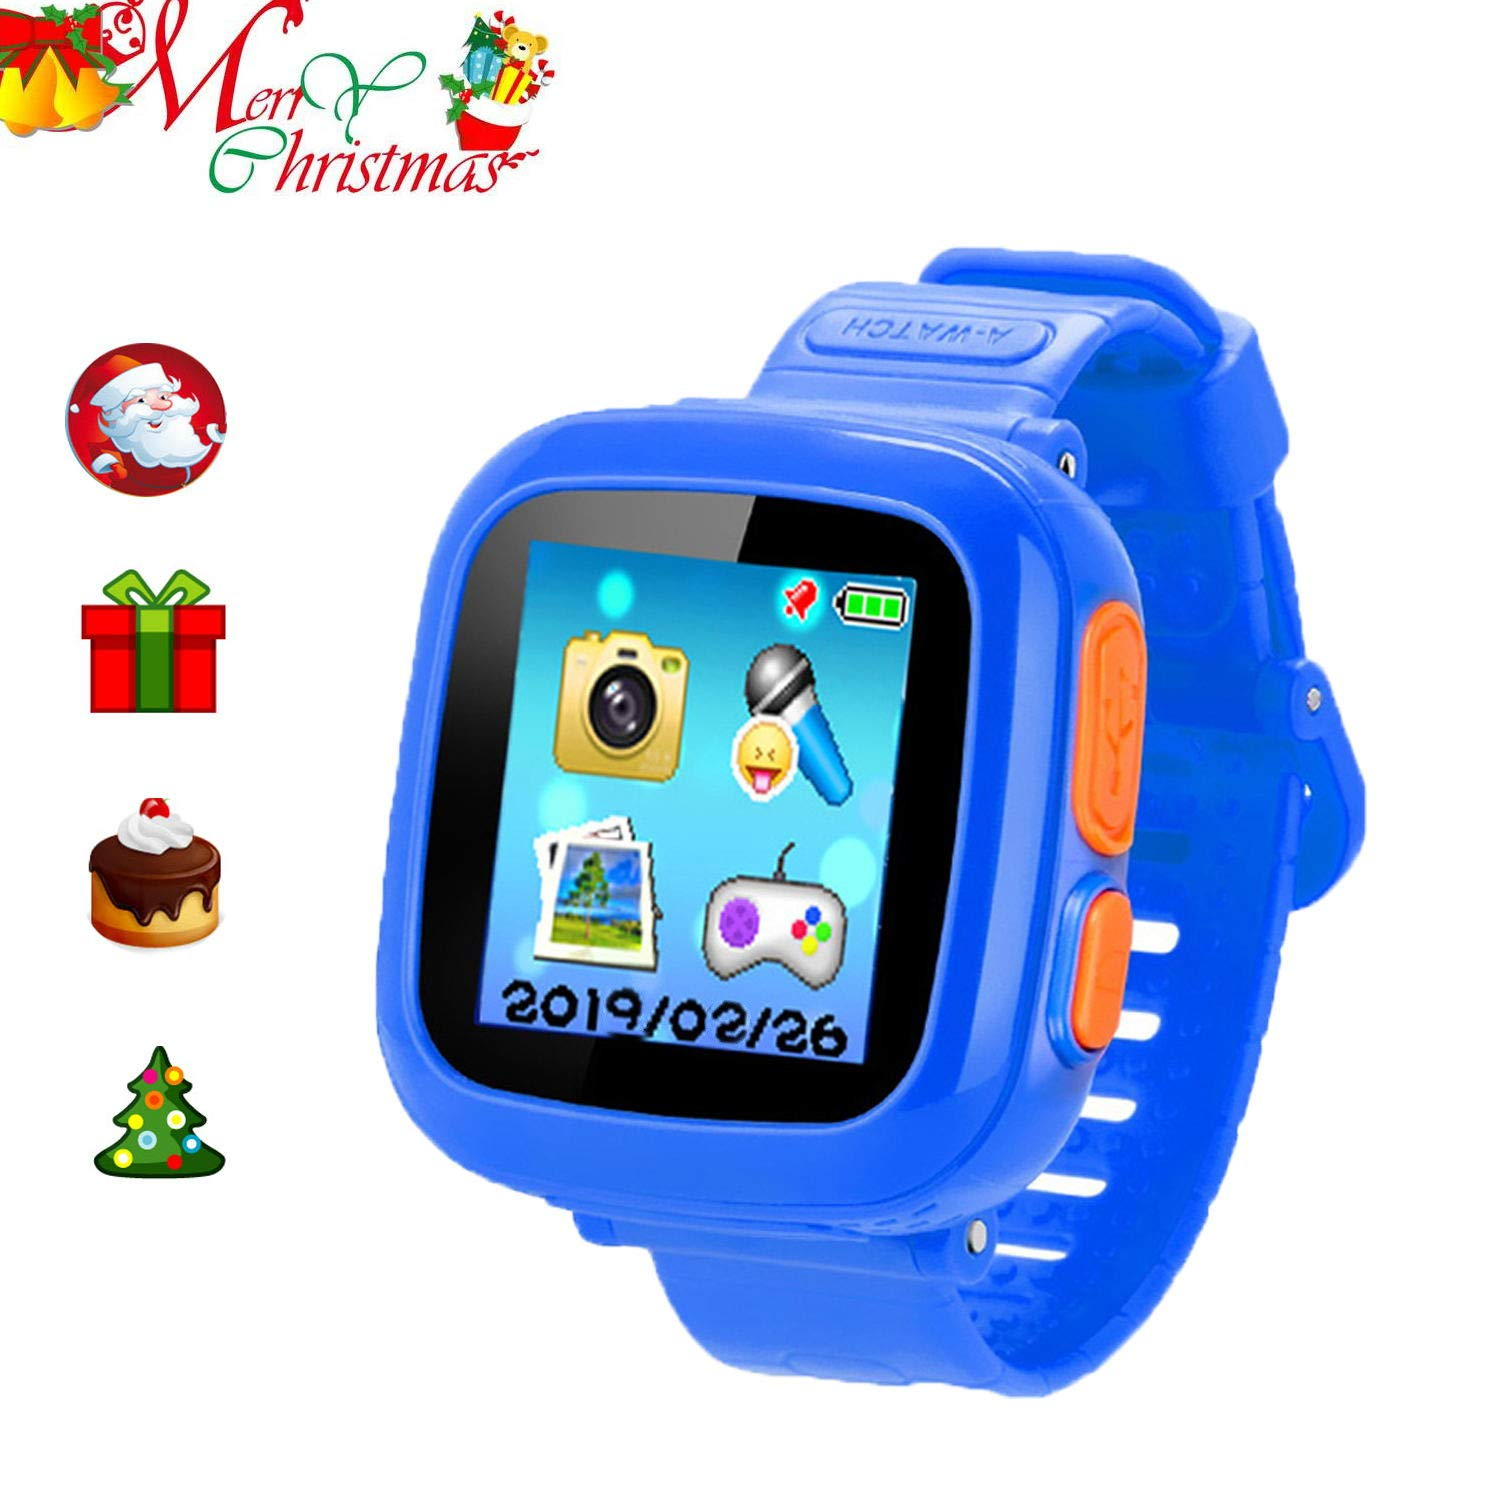 ZOPPRI Kids Game Watch Smart Watch for Kids Children's Birthday Gift with 1.5 '' Touch Screen and 10 Games, Children's Watch Pedometer Clock Smart Watch Kids Toys Boys Girls Gift. (deep Bule)